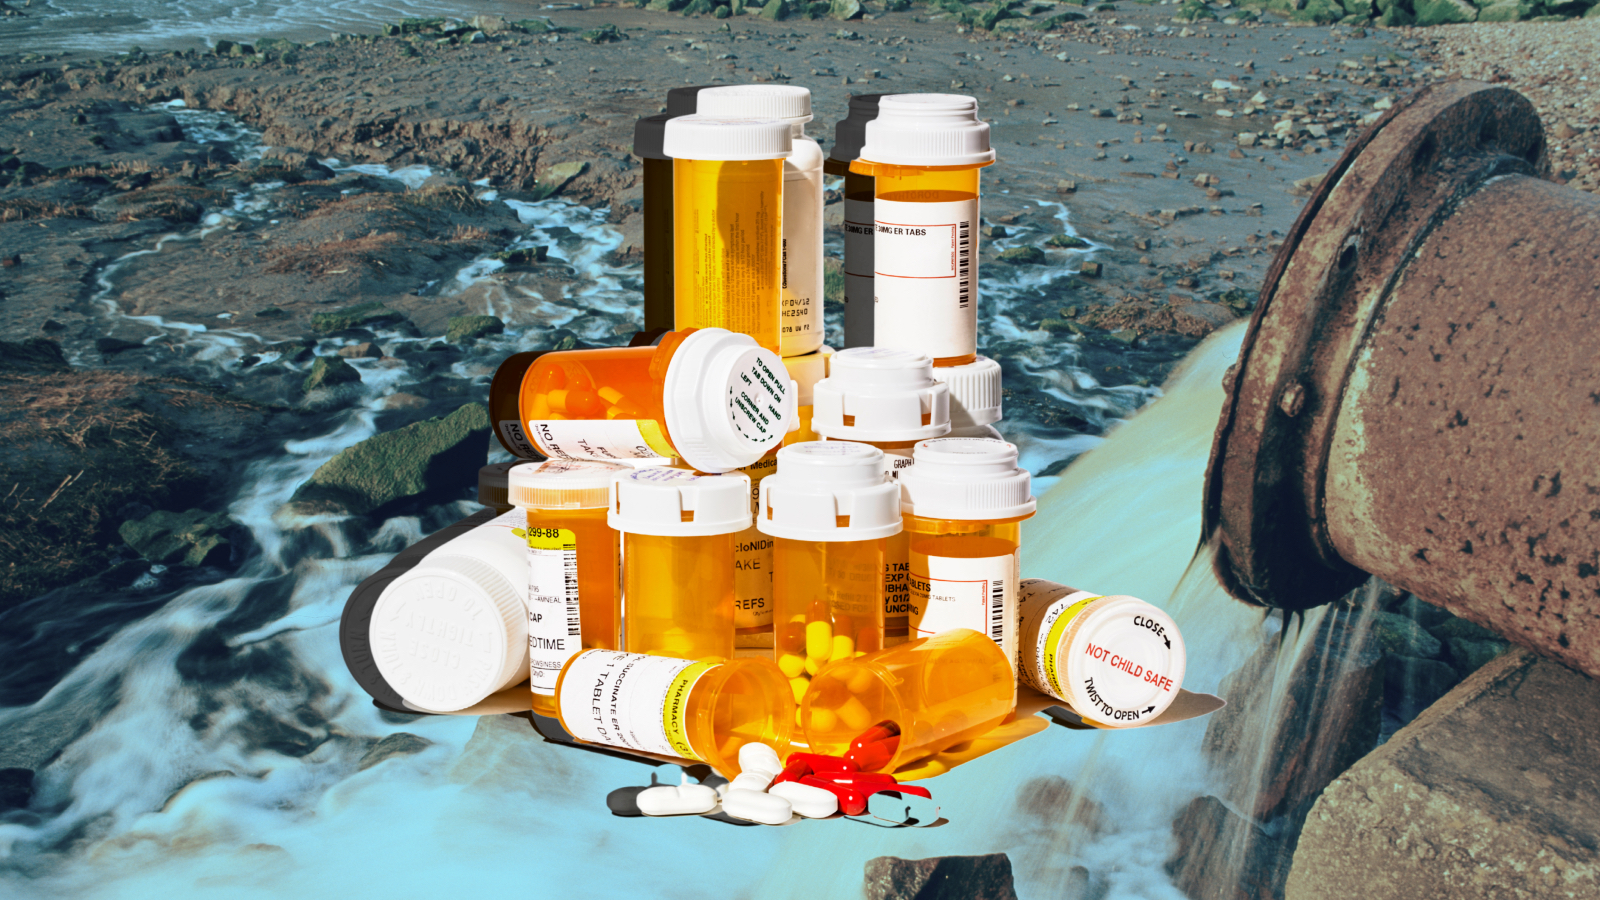 Image of pill bottles on top of a background showing contaminated water